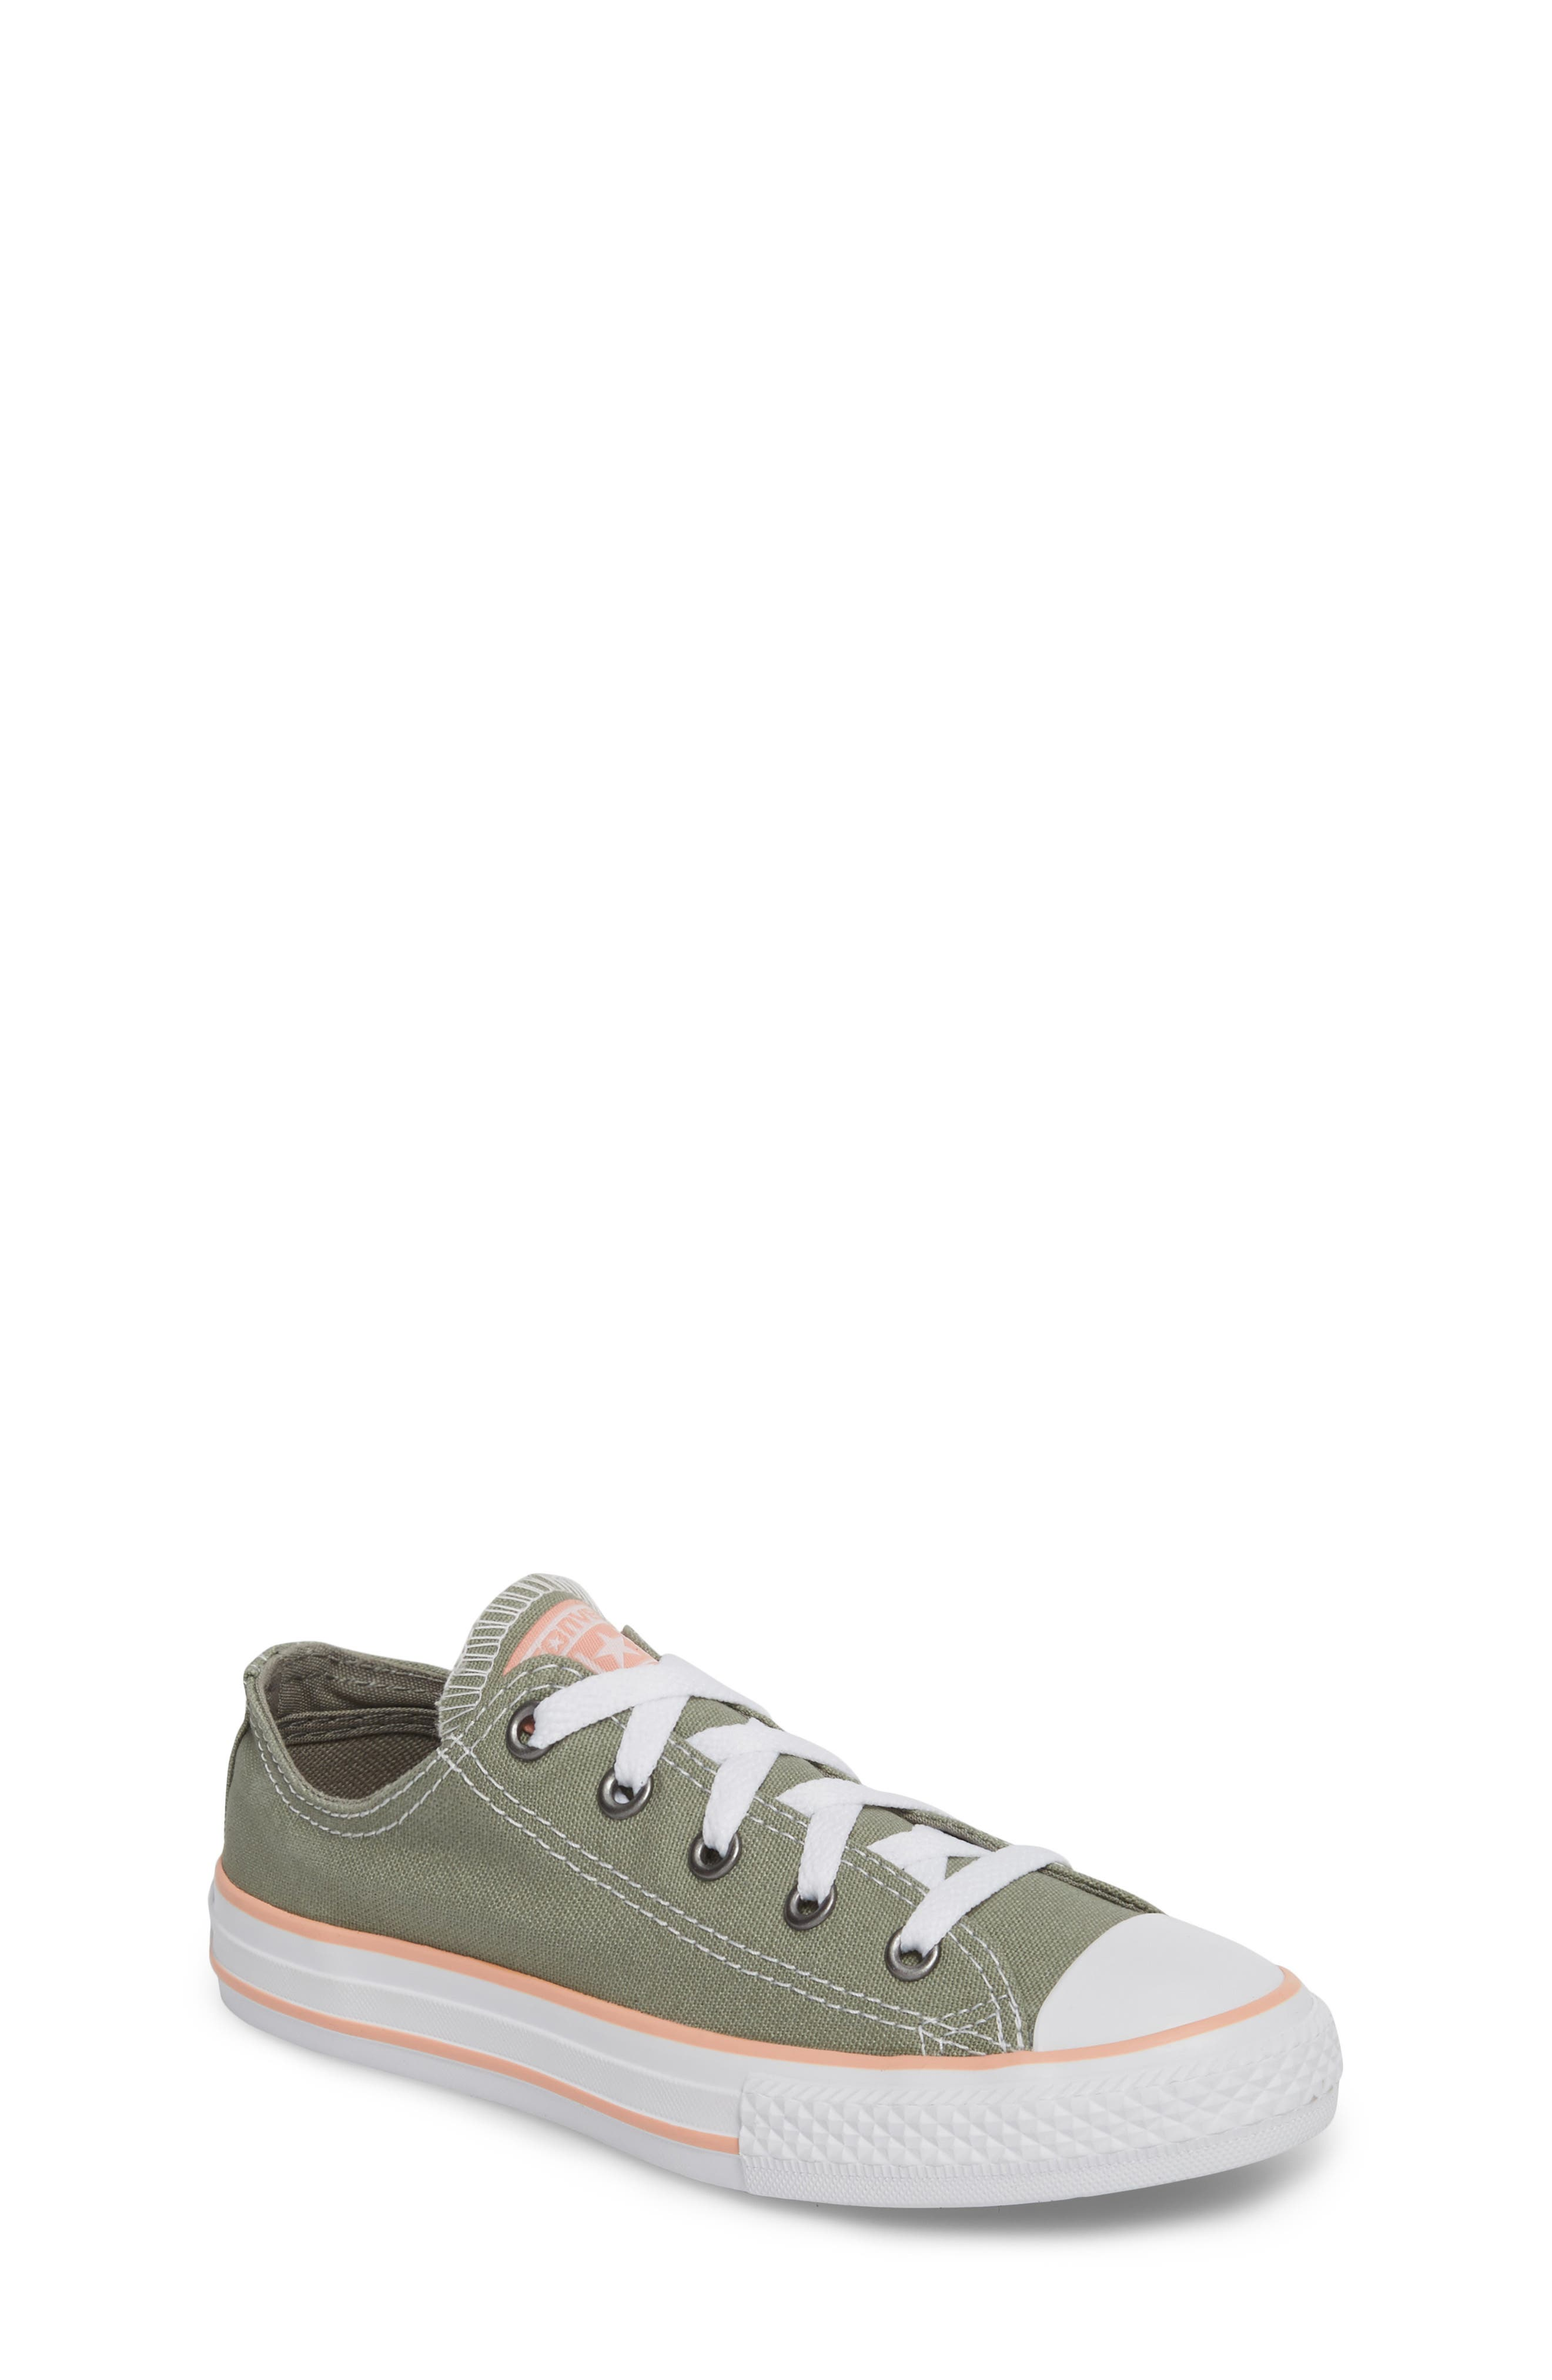 Chuck Taylor<sup>®</sup> All Star<sup>®</sup> Low Top Sneaker,                         Main,                         color,